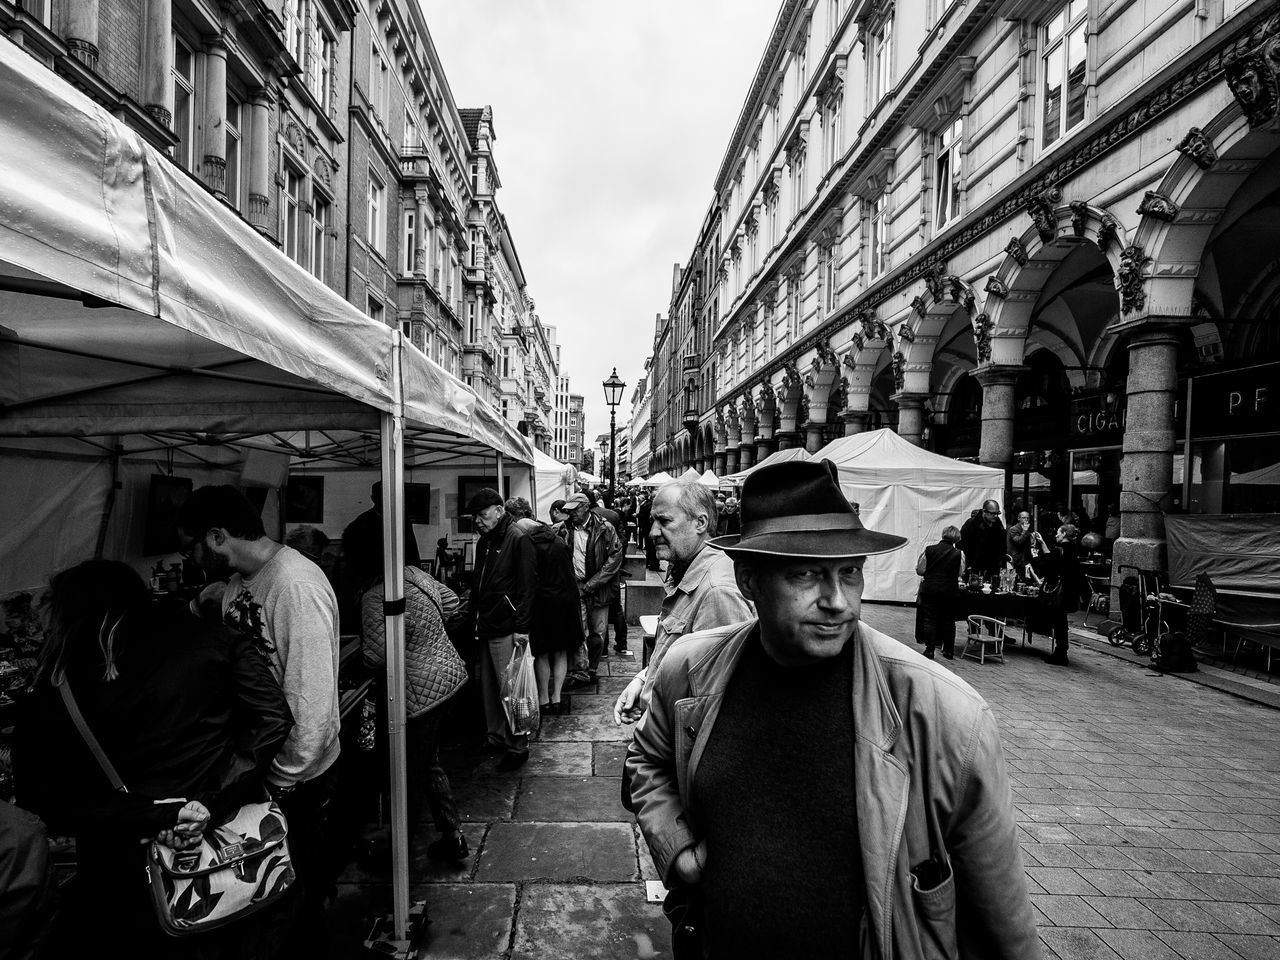 Stall // Hamburg Building Exterior Real People Architecture Built Structure Men City Street Casual Clothing Standing Outdoors Store Day Lifestyles Large Group Of People Sky Adult Only Men Adults Only People Streetphotography Monochrome Blackandwhite Eye Contact Wide Angle The Street Photographer - 2017 EyeEm Awards